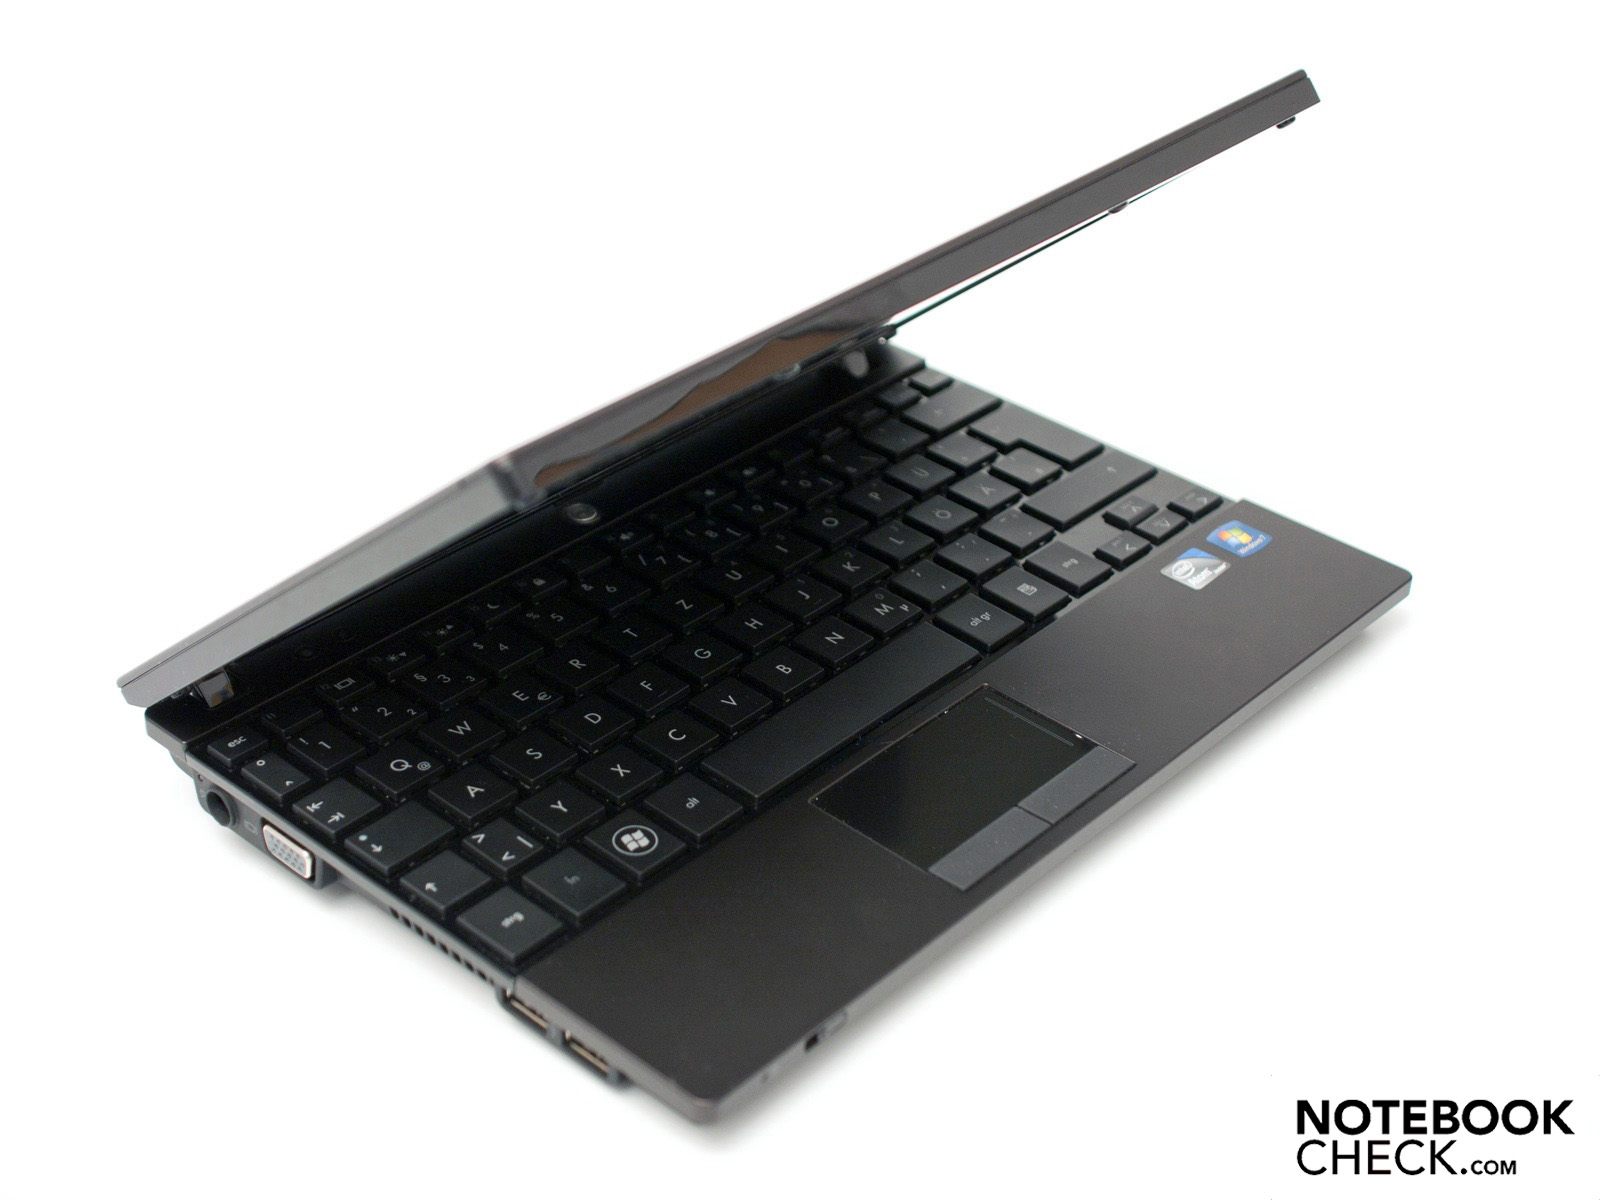 HP MINI 1131TU SMSC LAN WINDOWS 7 X64 DRIVER DOWNLOAD